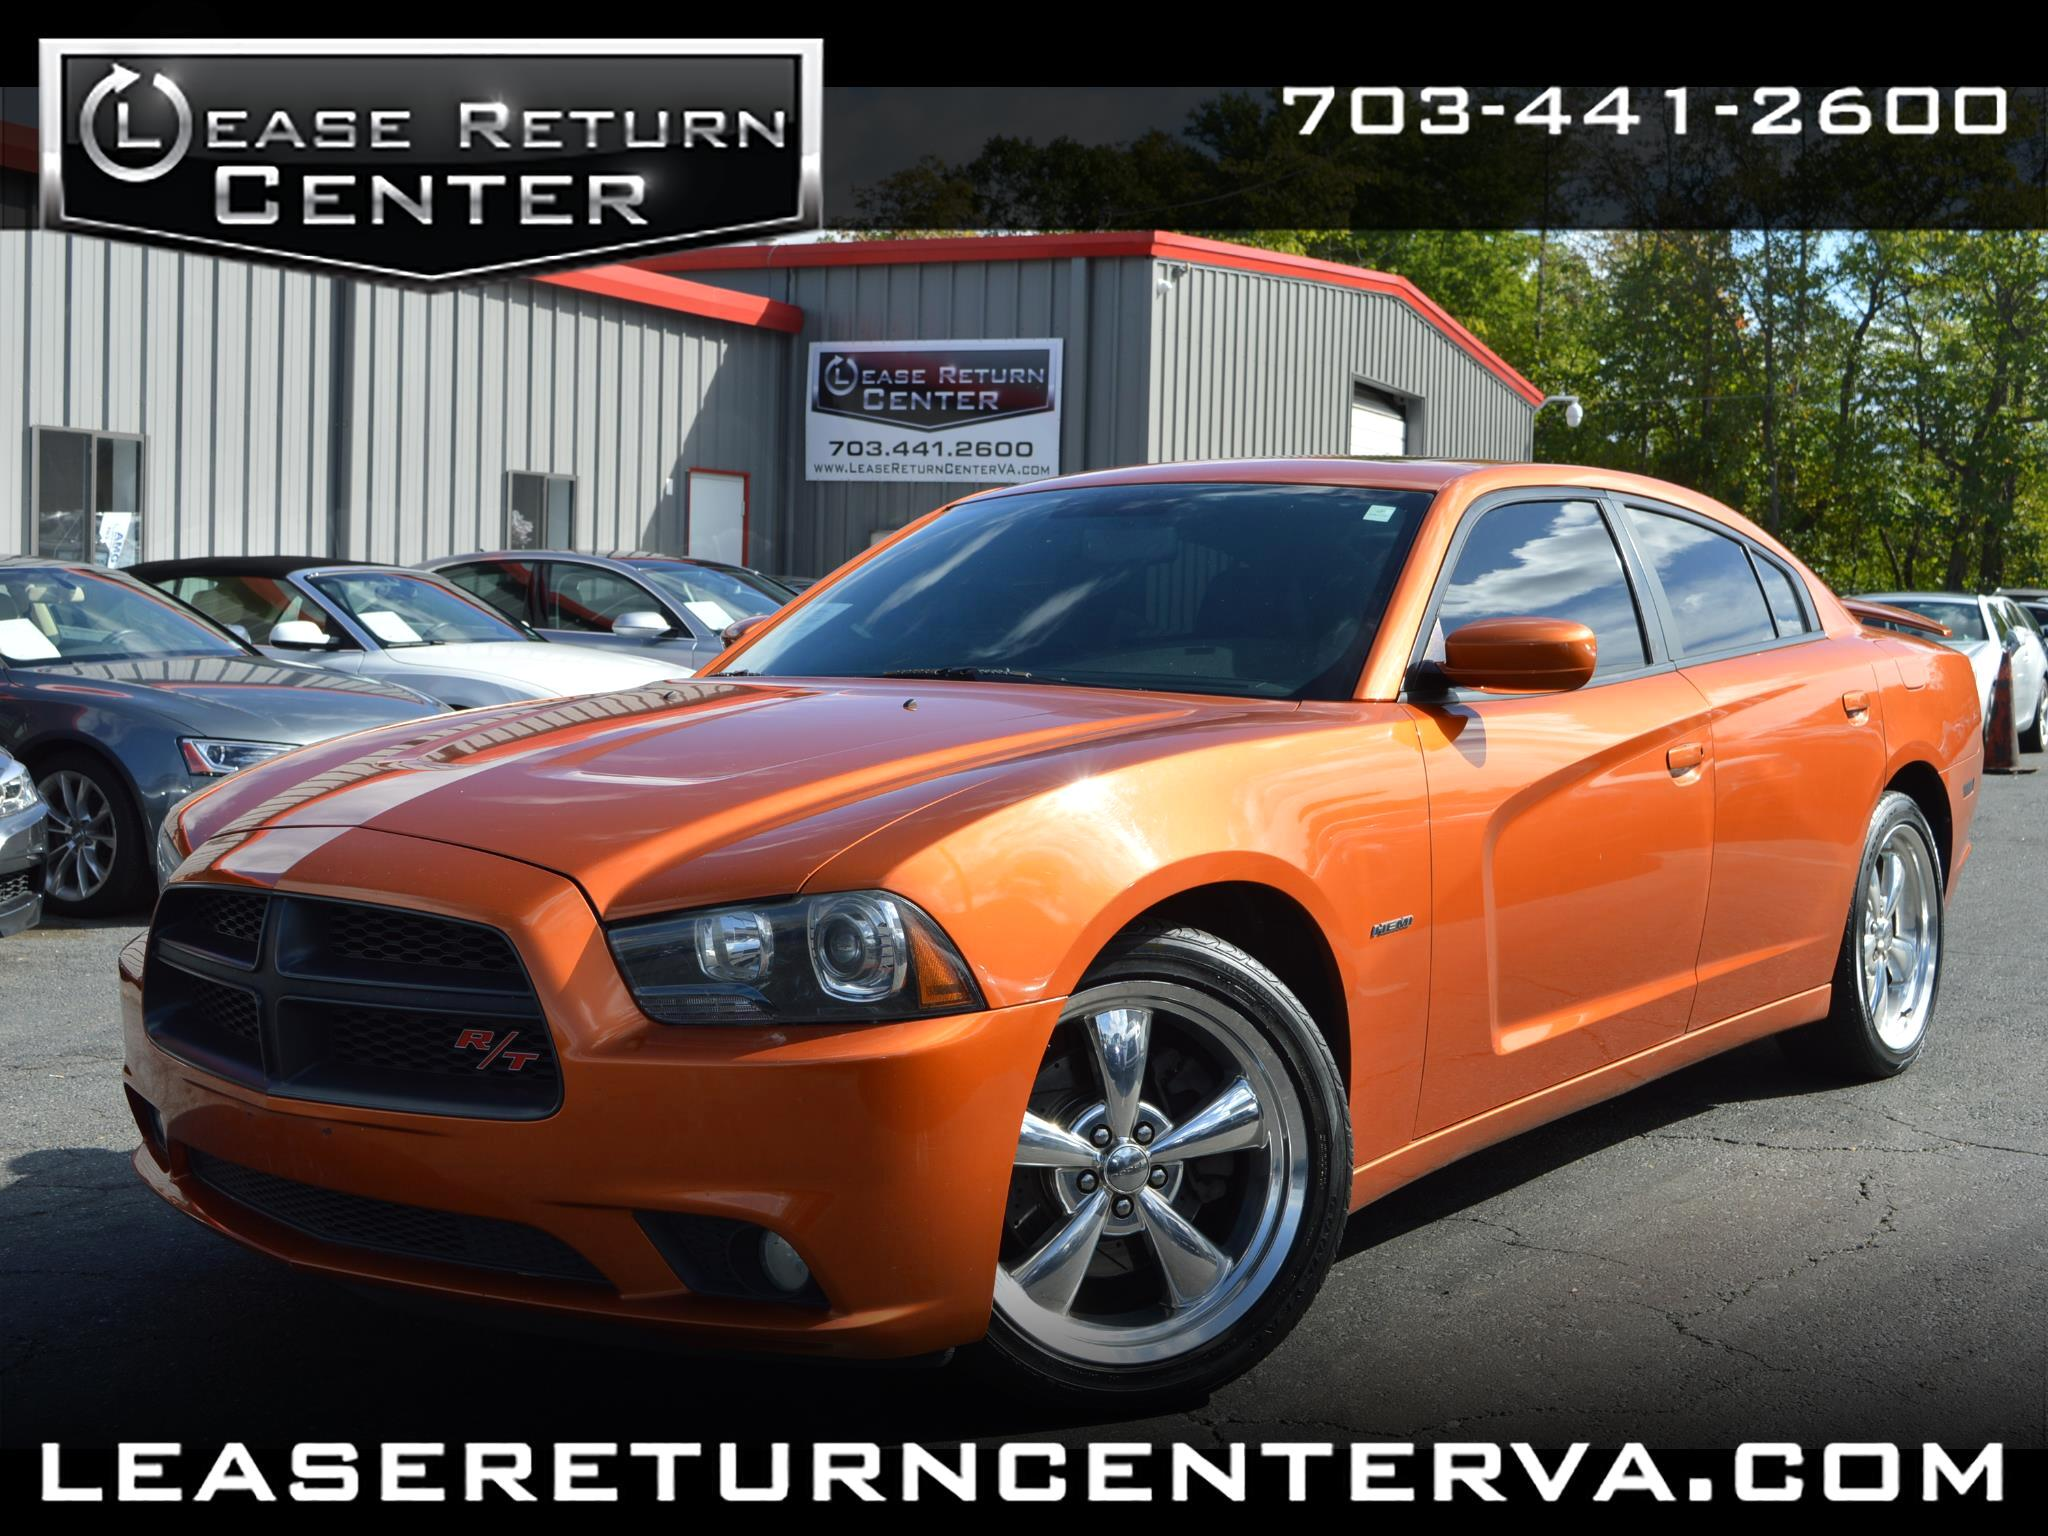 2011 Dodge Charger ROAD/TRACK RT